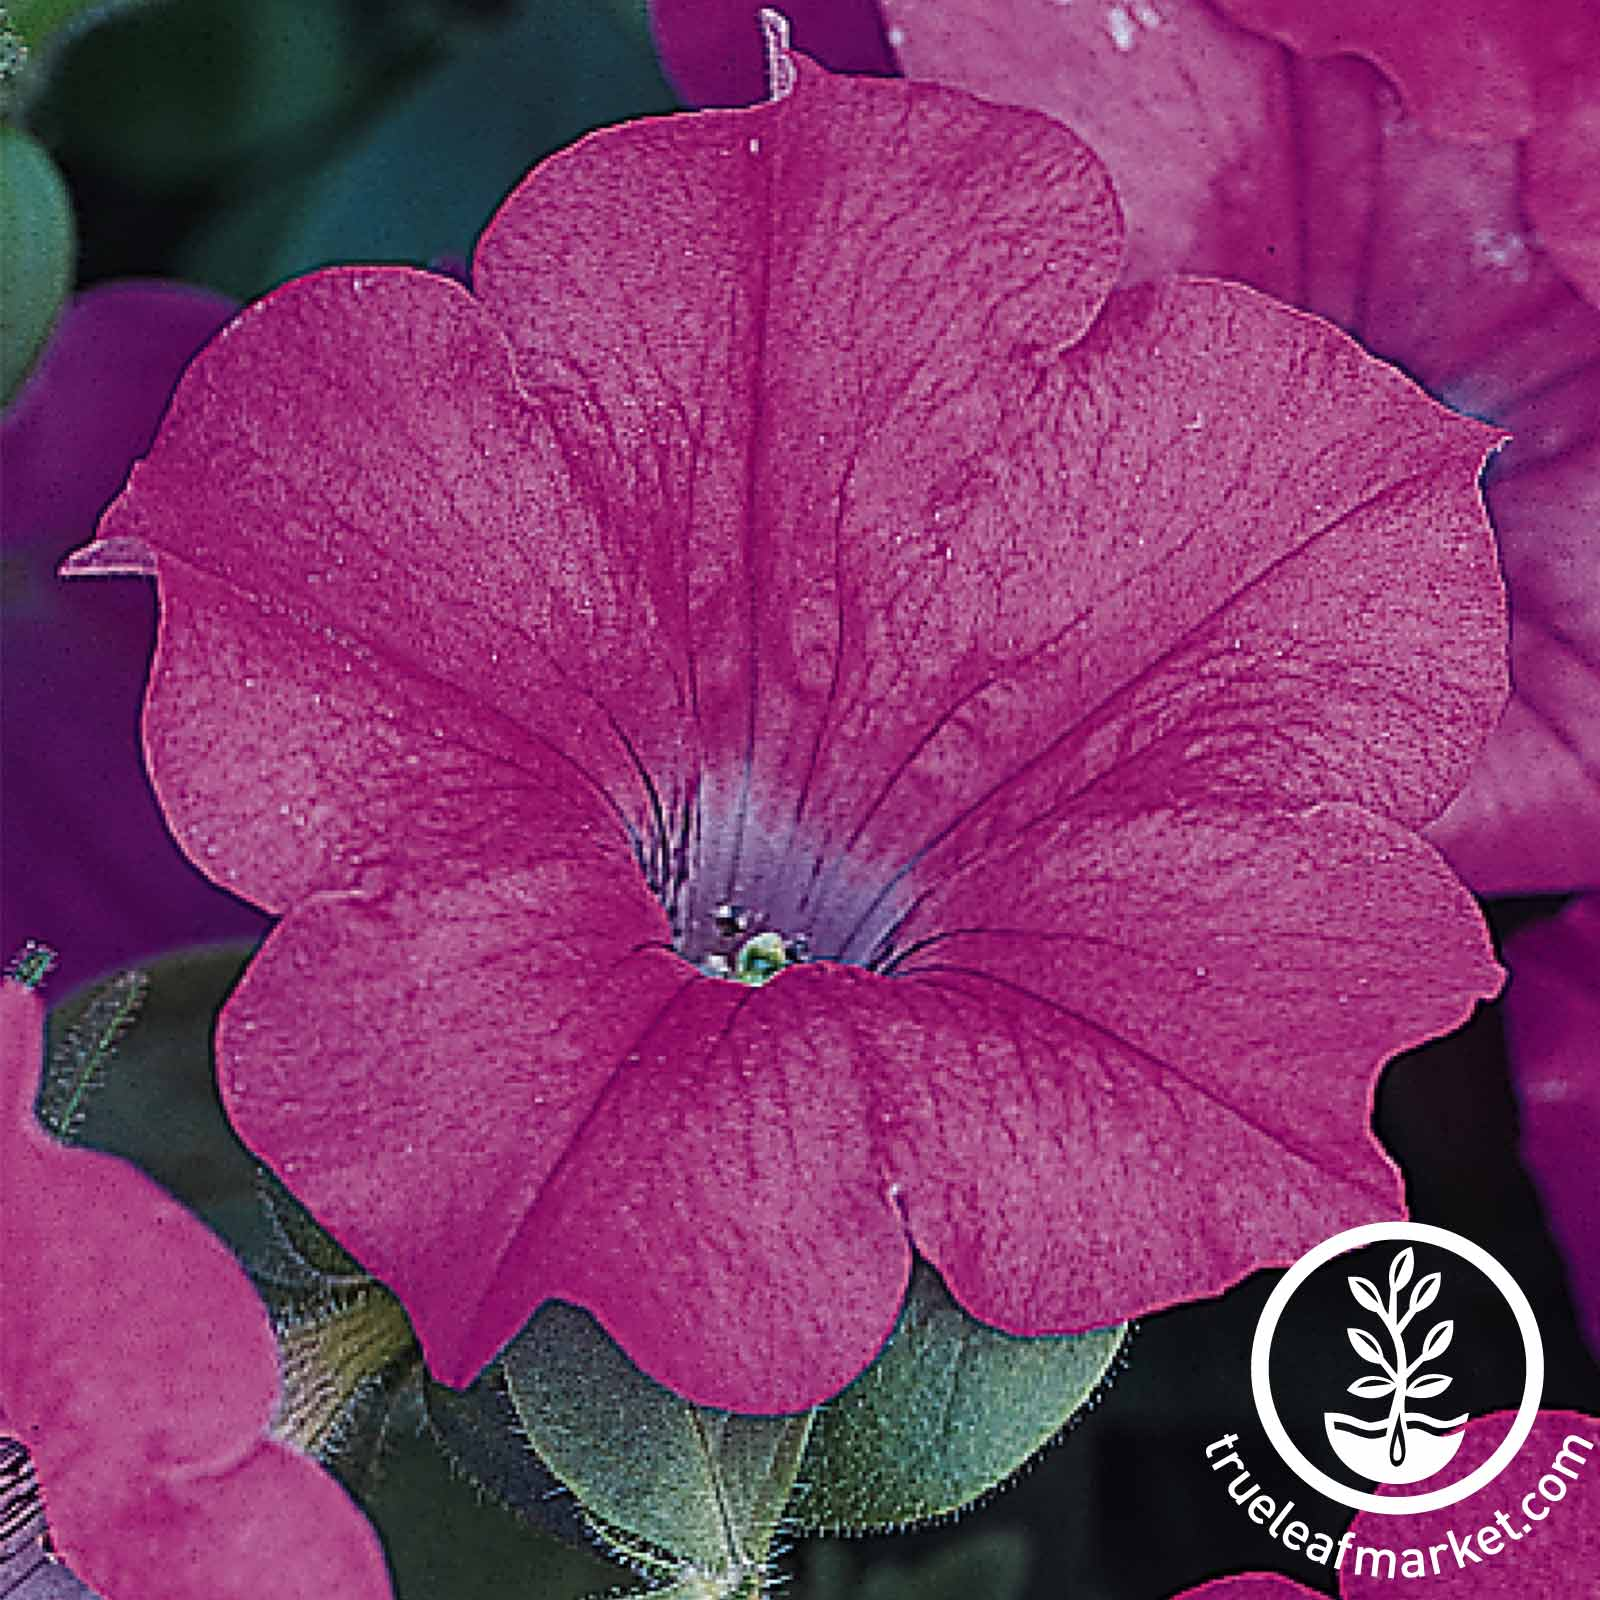 Petunia Wave Series pelleted Lavender Seed